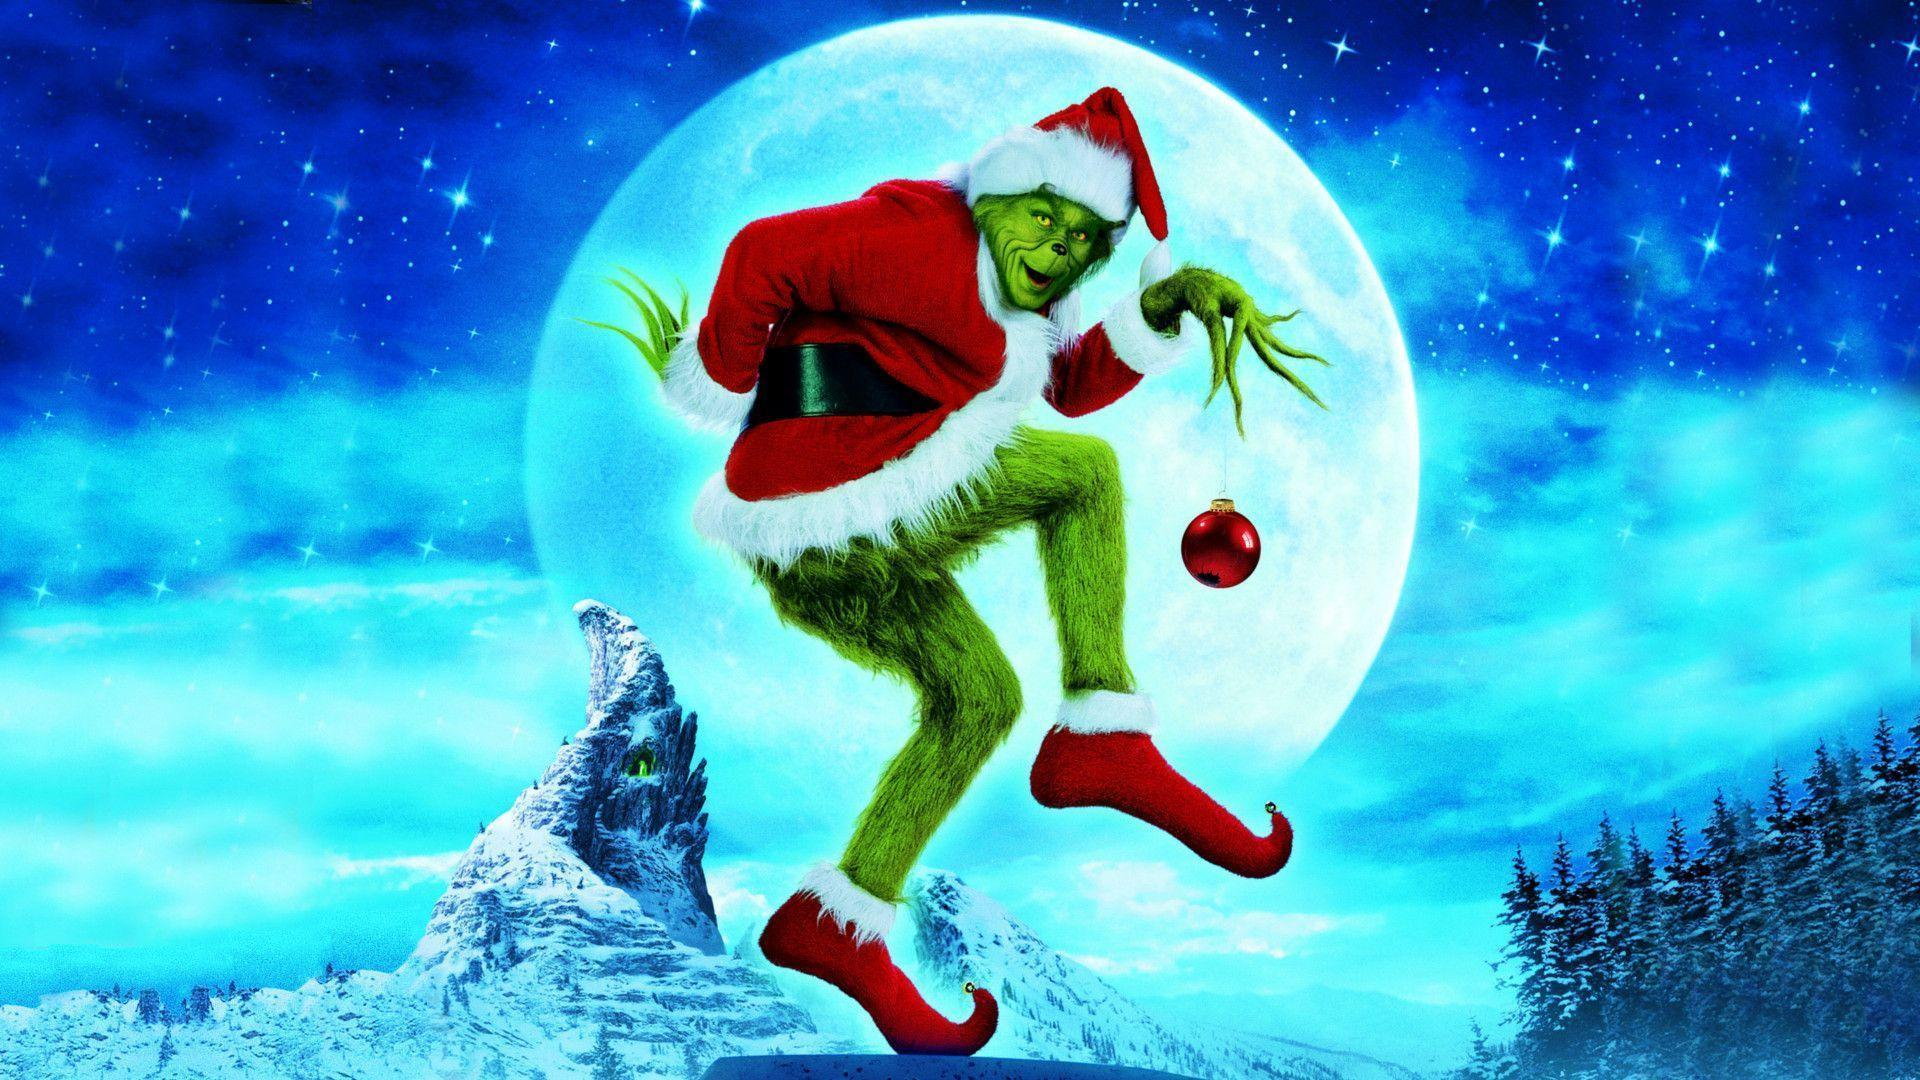 Amazing Grinch Wallpapers Wallpaper Cave Easy Diy Christmas Decorations Tissureus